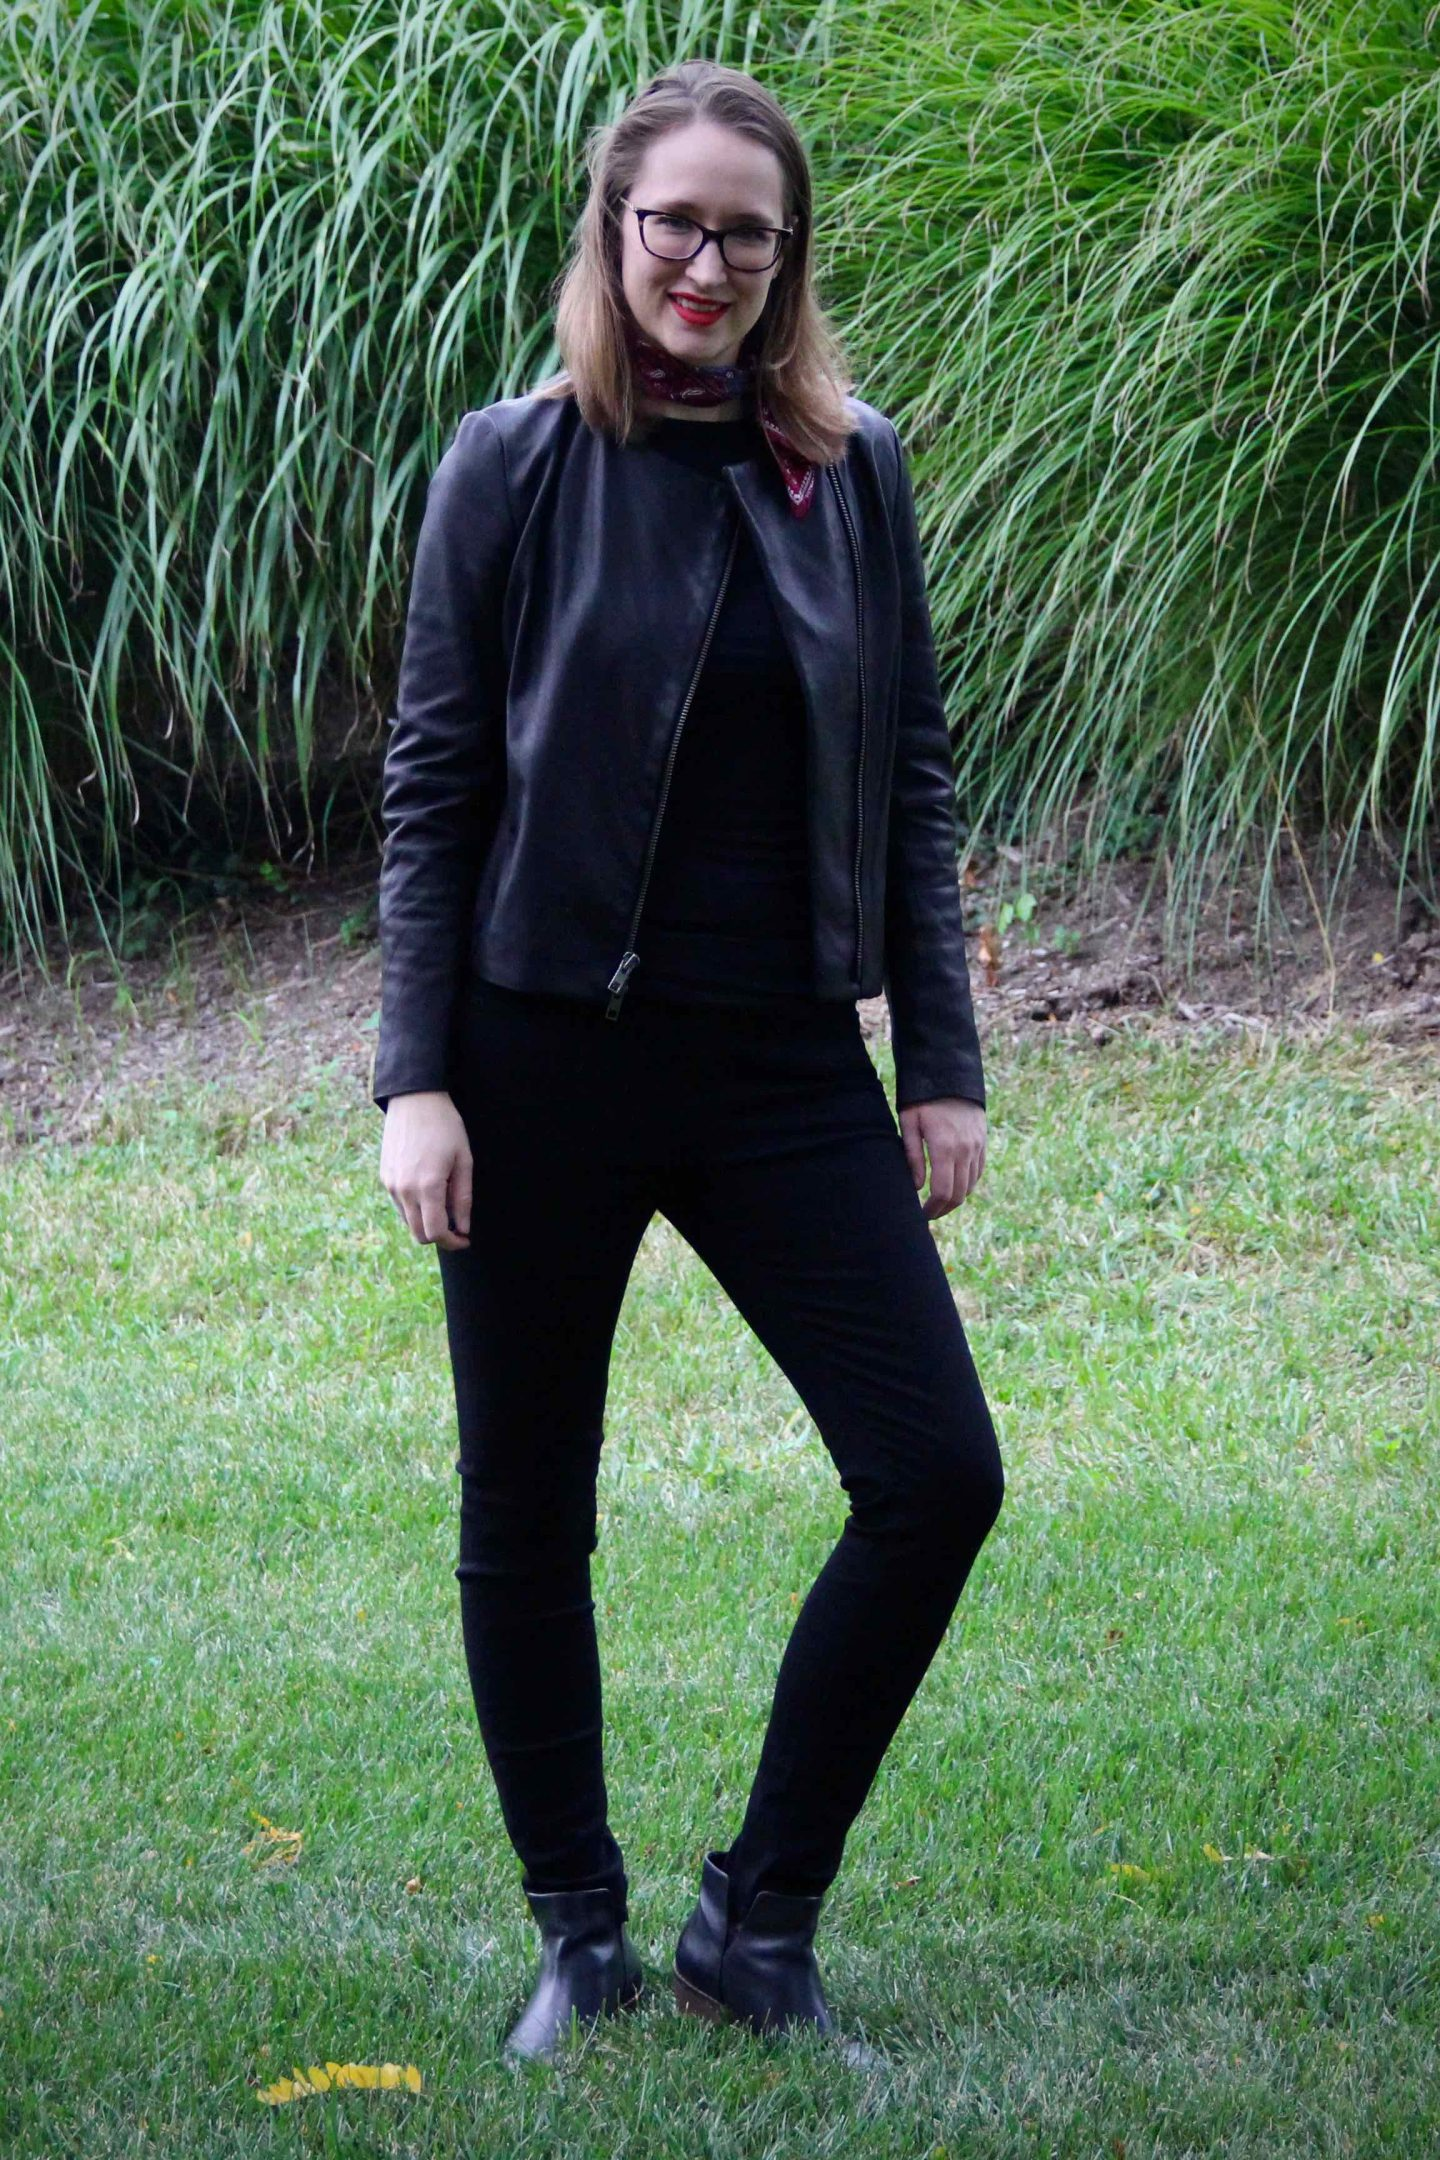 Casual Leather Fashion | The Spectacular Adventurer